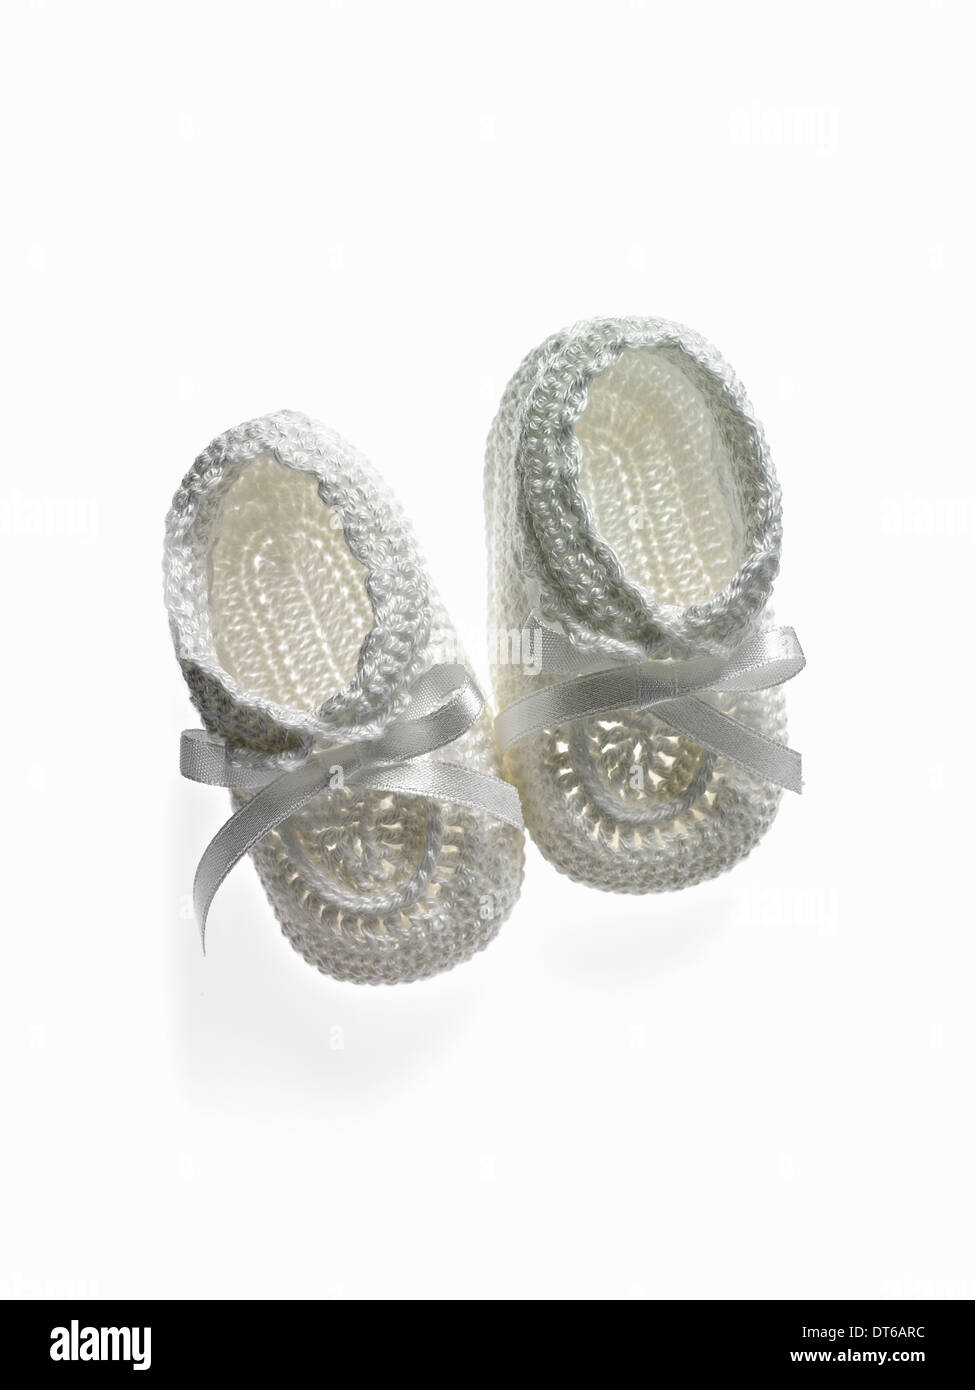 A pair of white baby booties, shoes for infants. - Stock Image